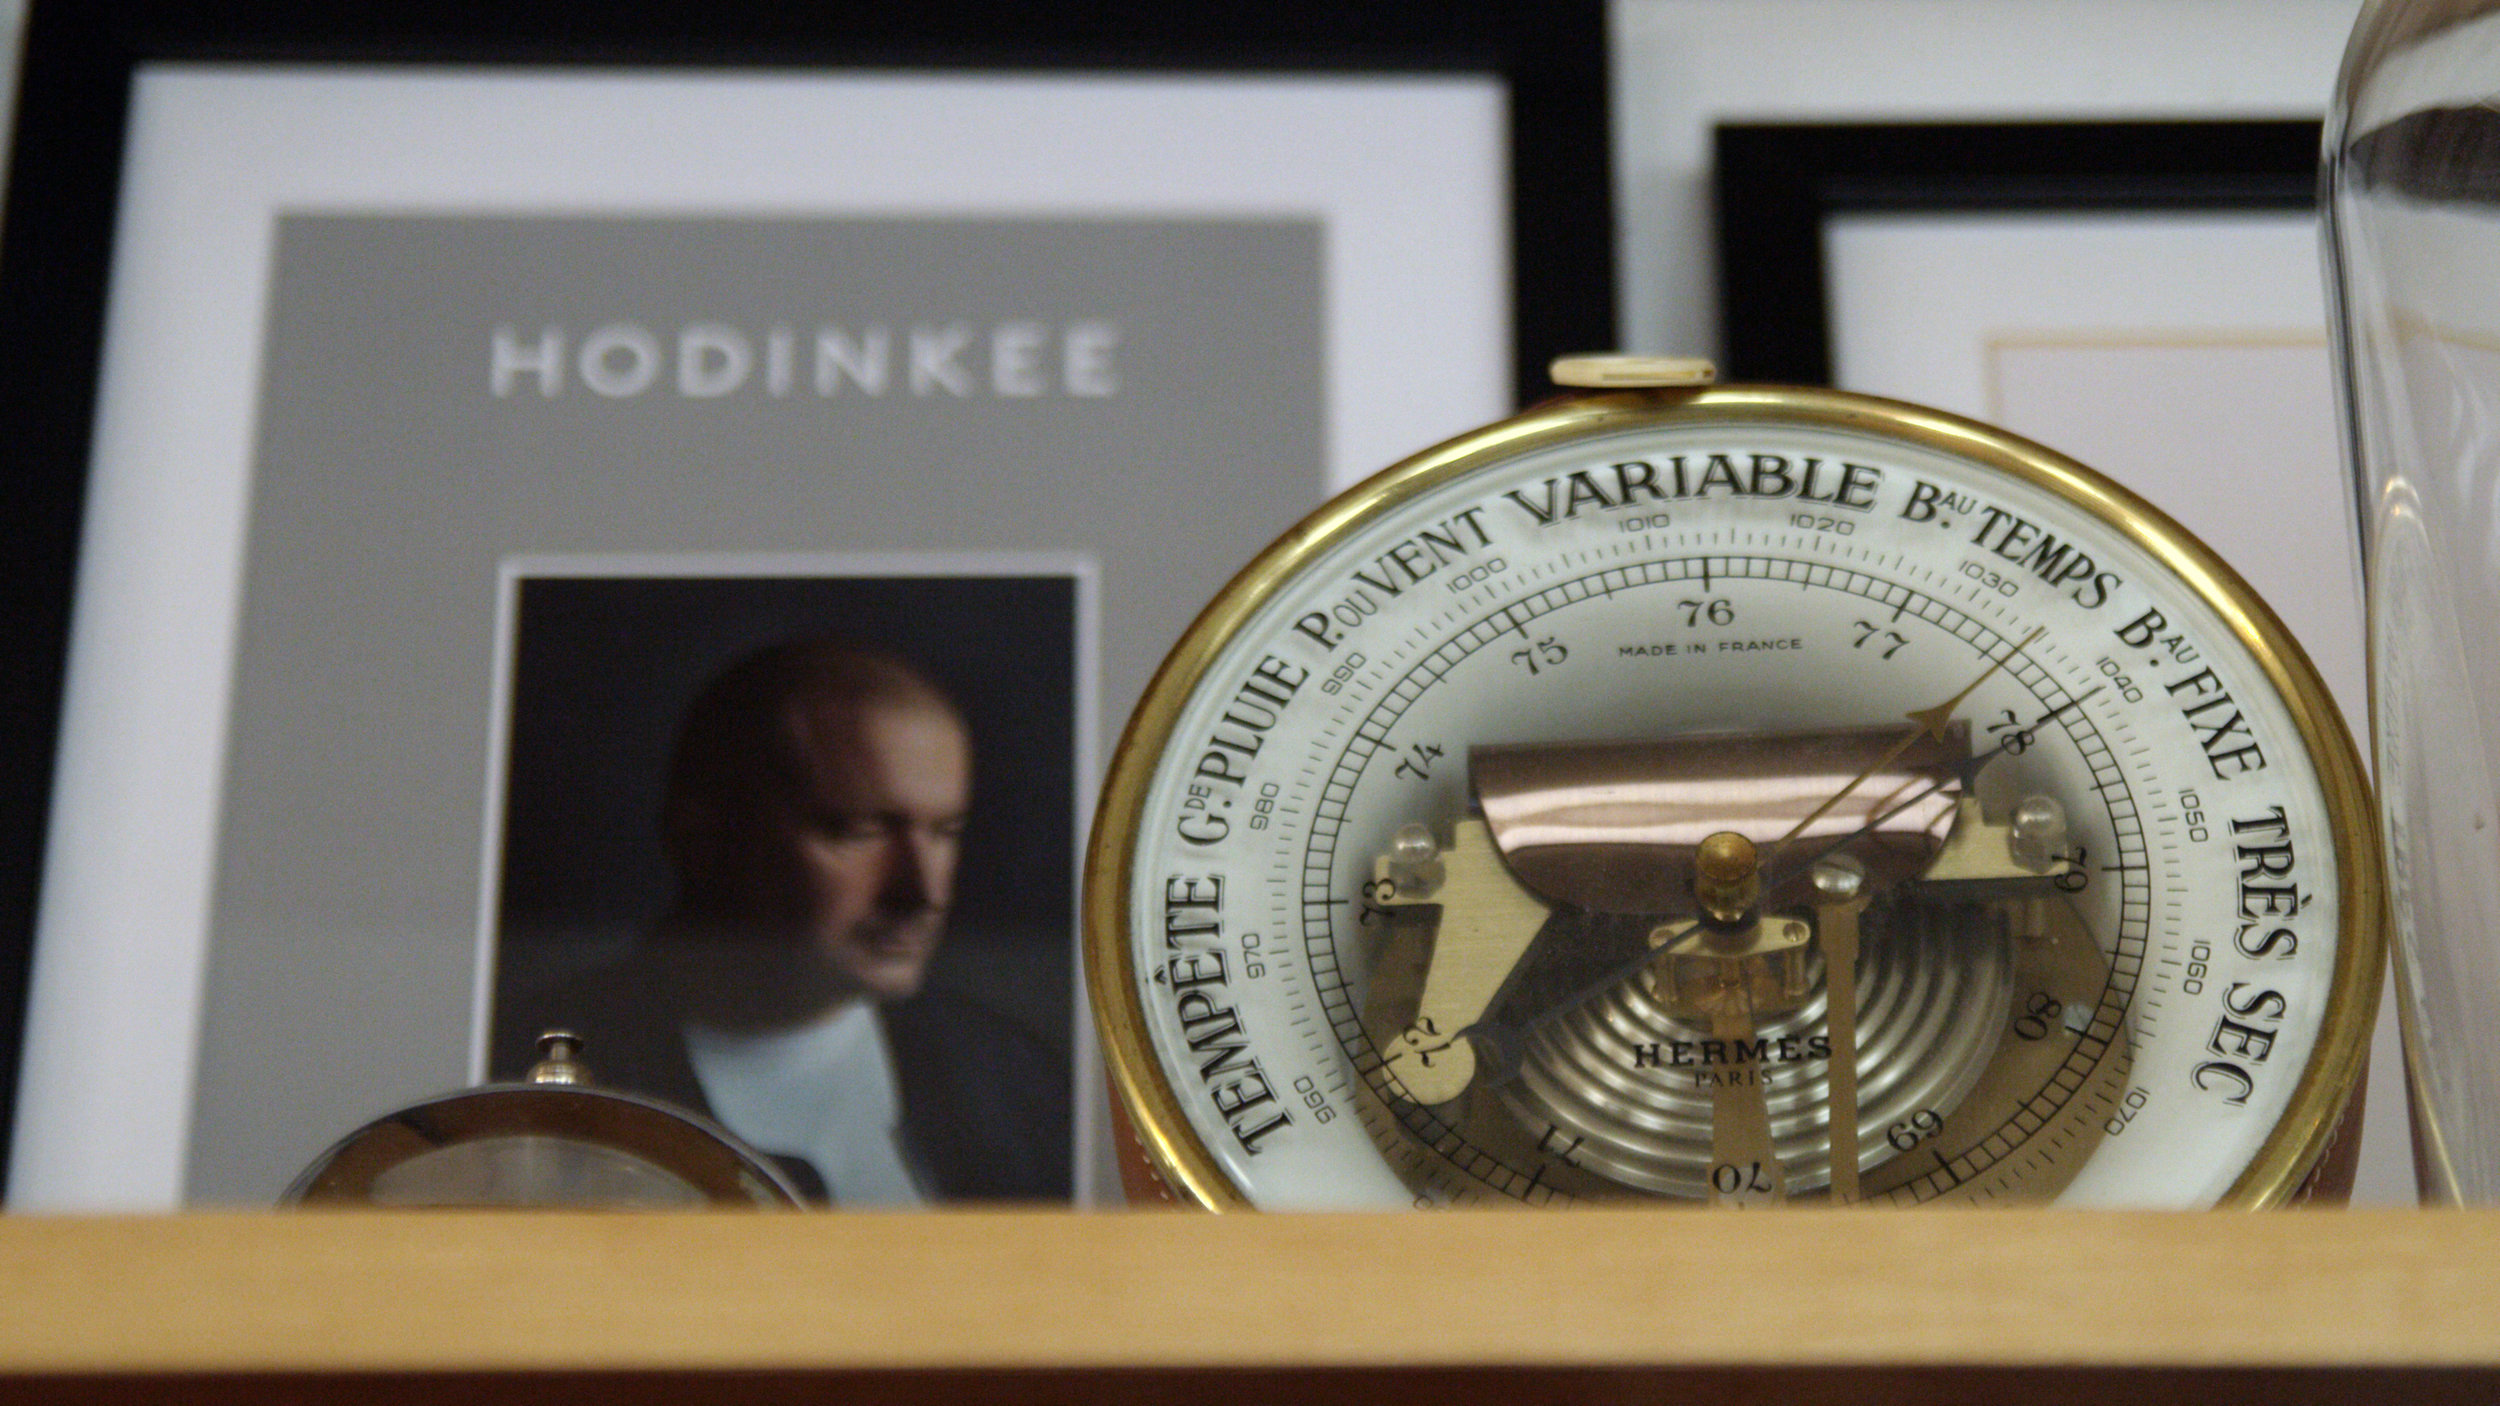 Hodinkee Magazine Vol. 2 (yes, that's Jony Ive on the cover) and a Hermès Holosteric barometer.